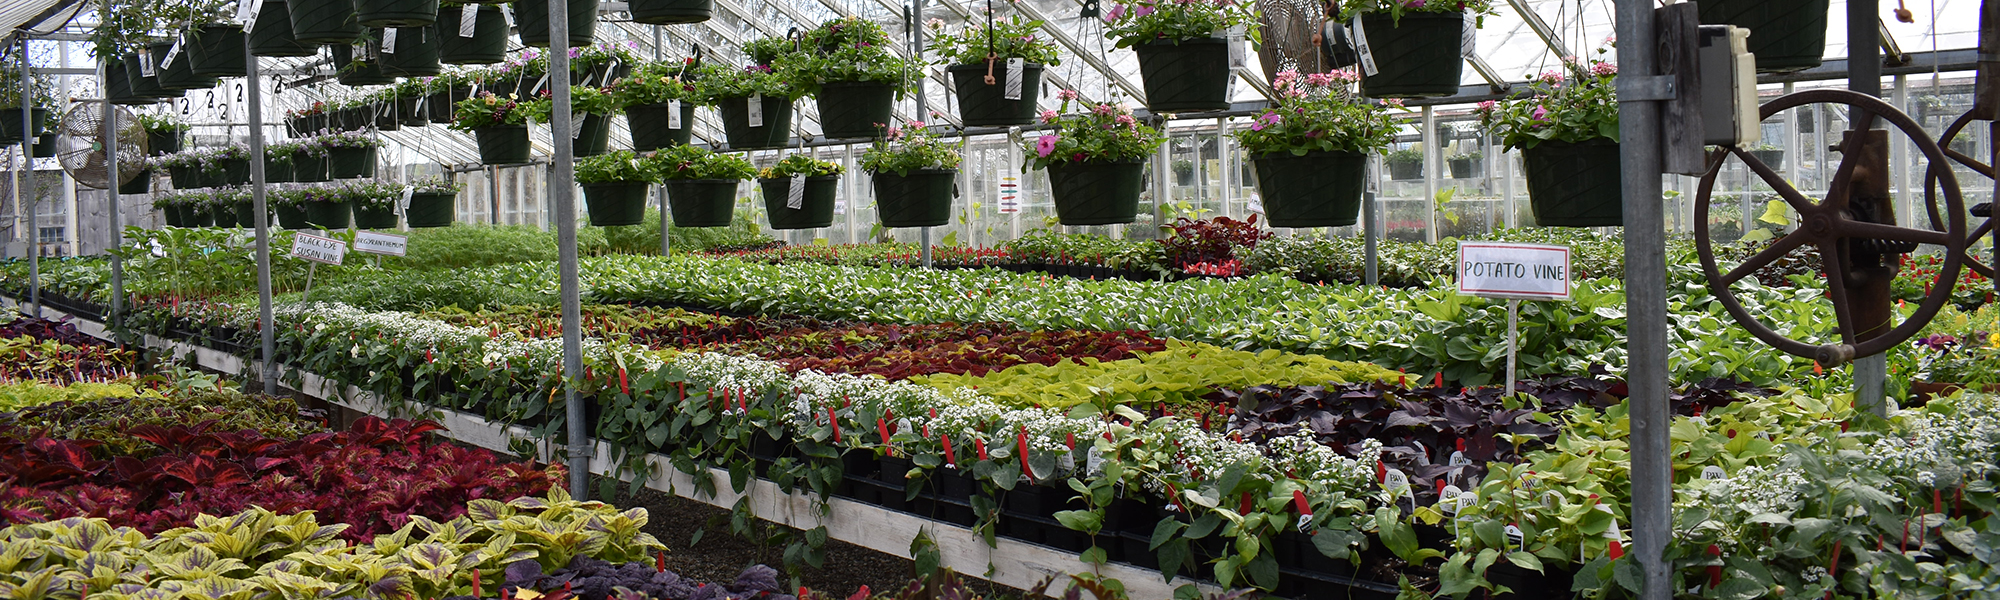 View inside glass greenhouses in spring